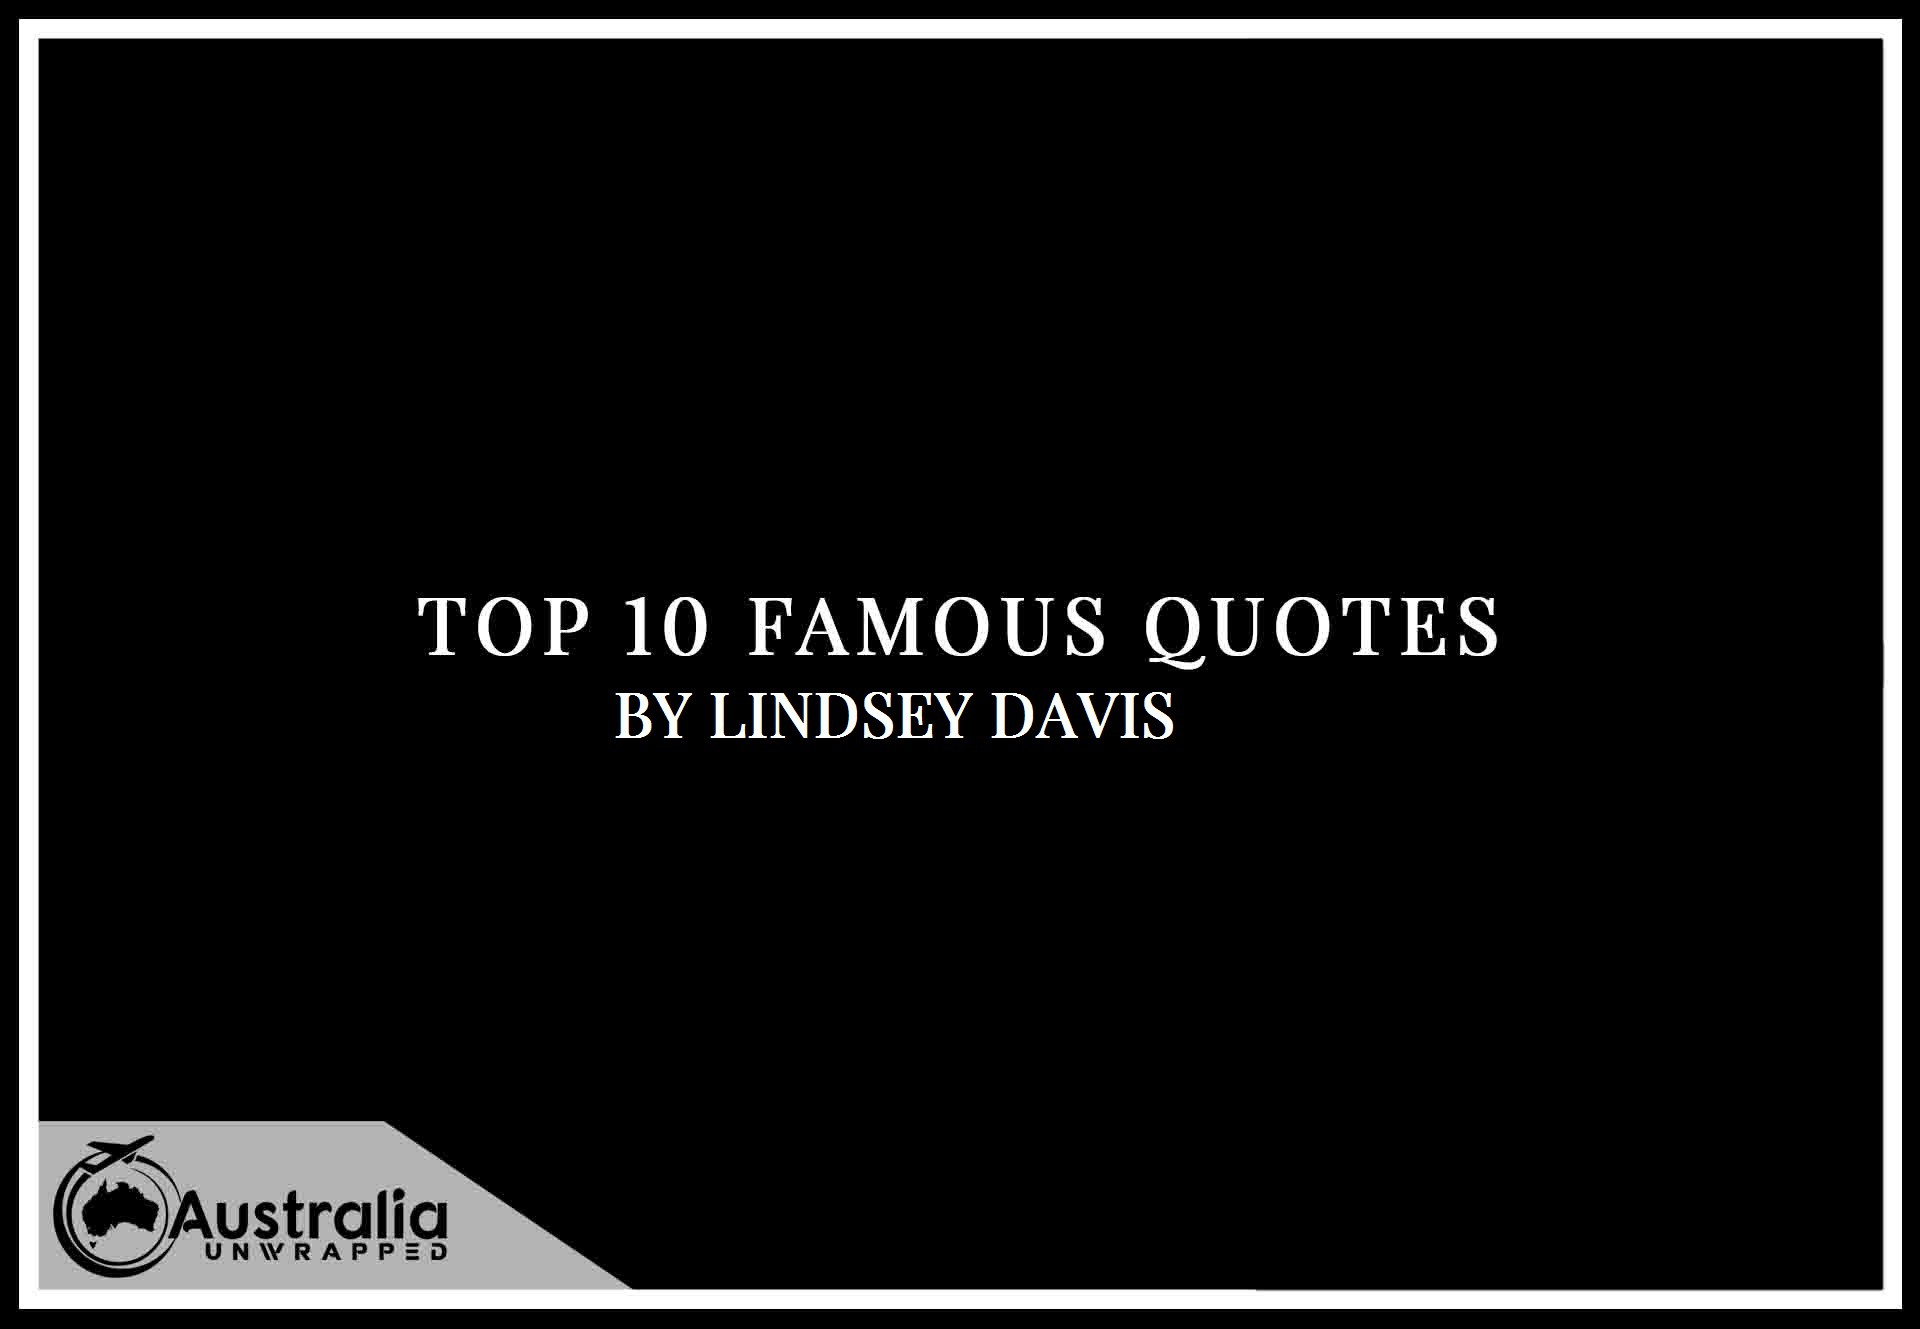 Lindsey Davis's Top 10 Popular and Famous Quotes